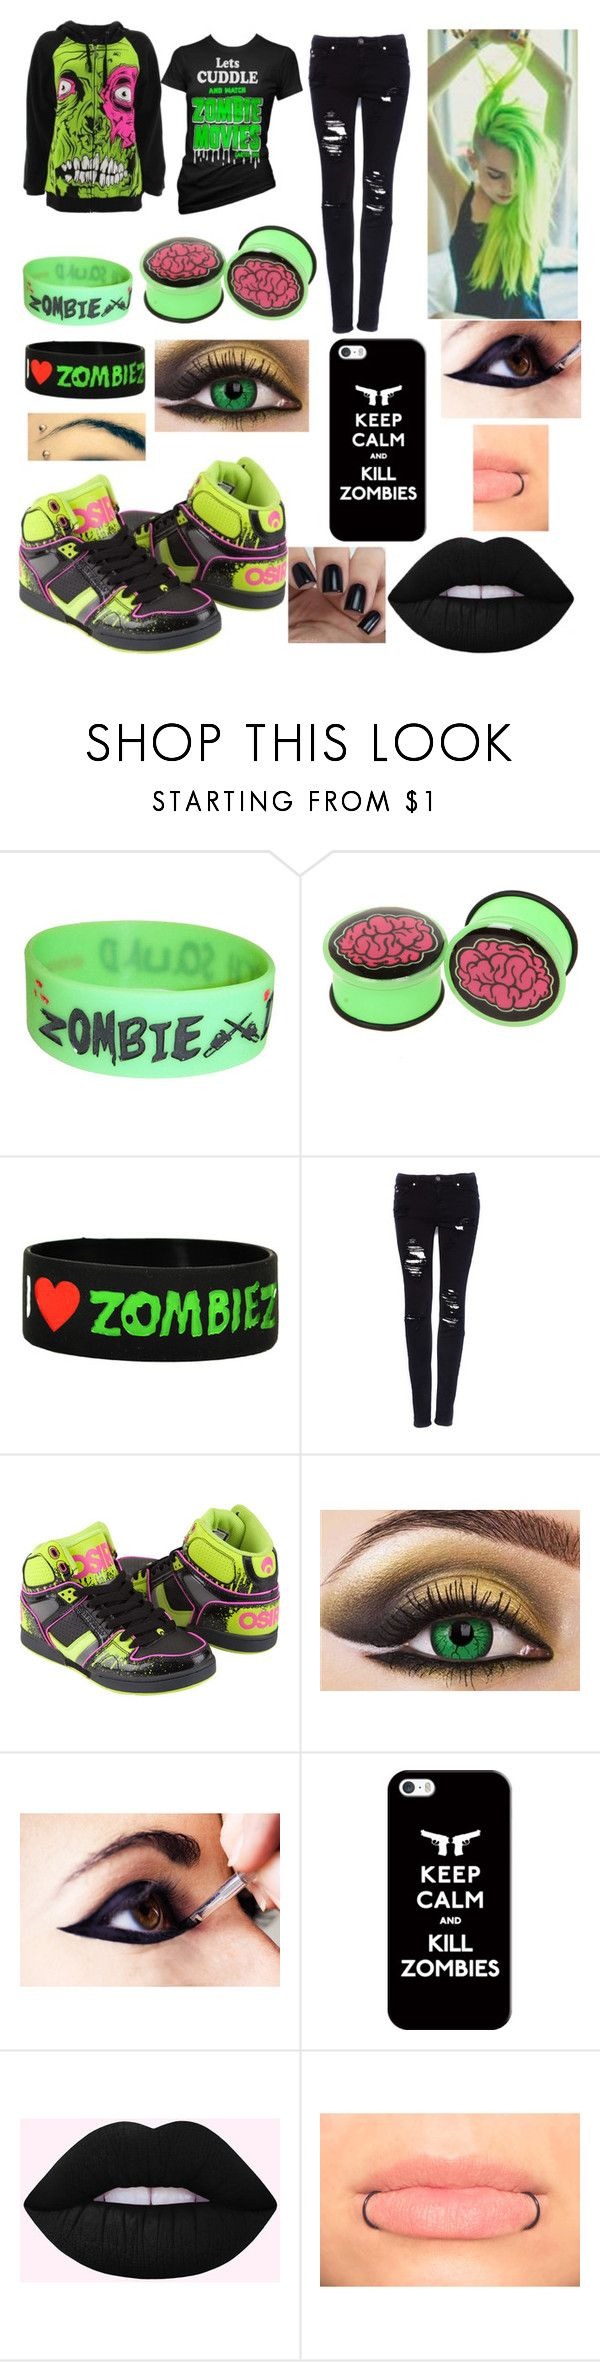 """""""Untitled #630"""" by tiktokterror ❤ liked on Polyvore featuring Iron Fist, Cartel Ink, Hot Topic, Goodie Two Sleeves, Pull&Bear, Osiris and Casetify"""